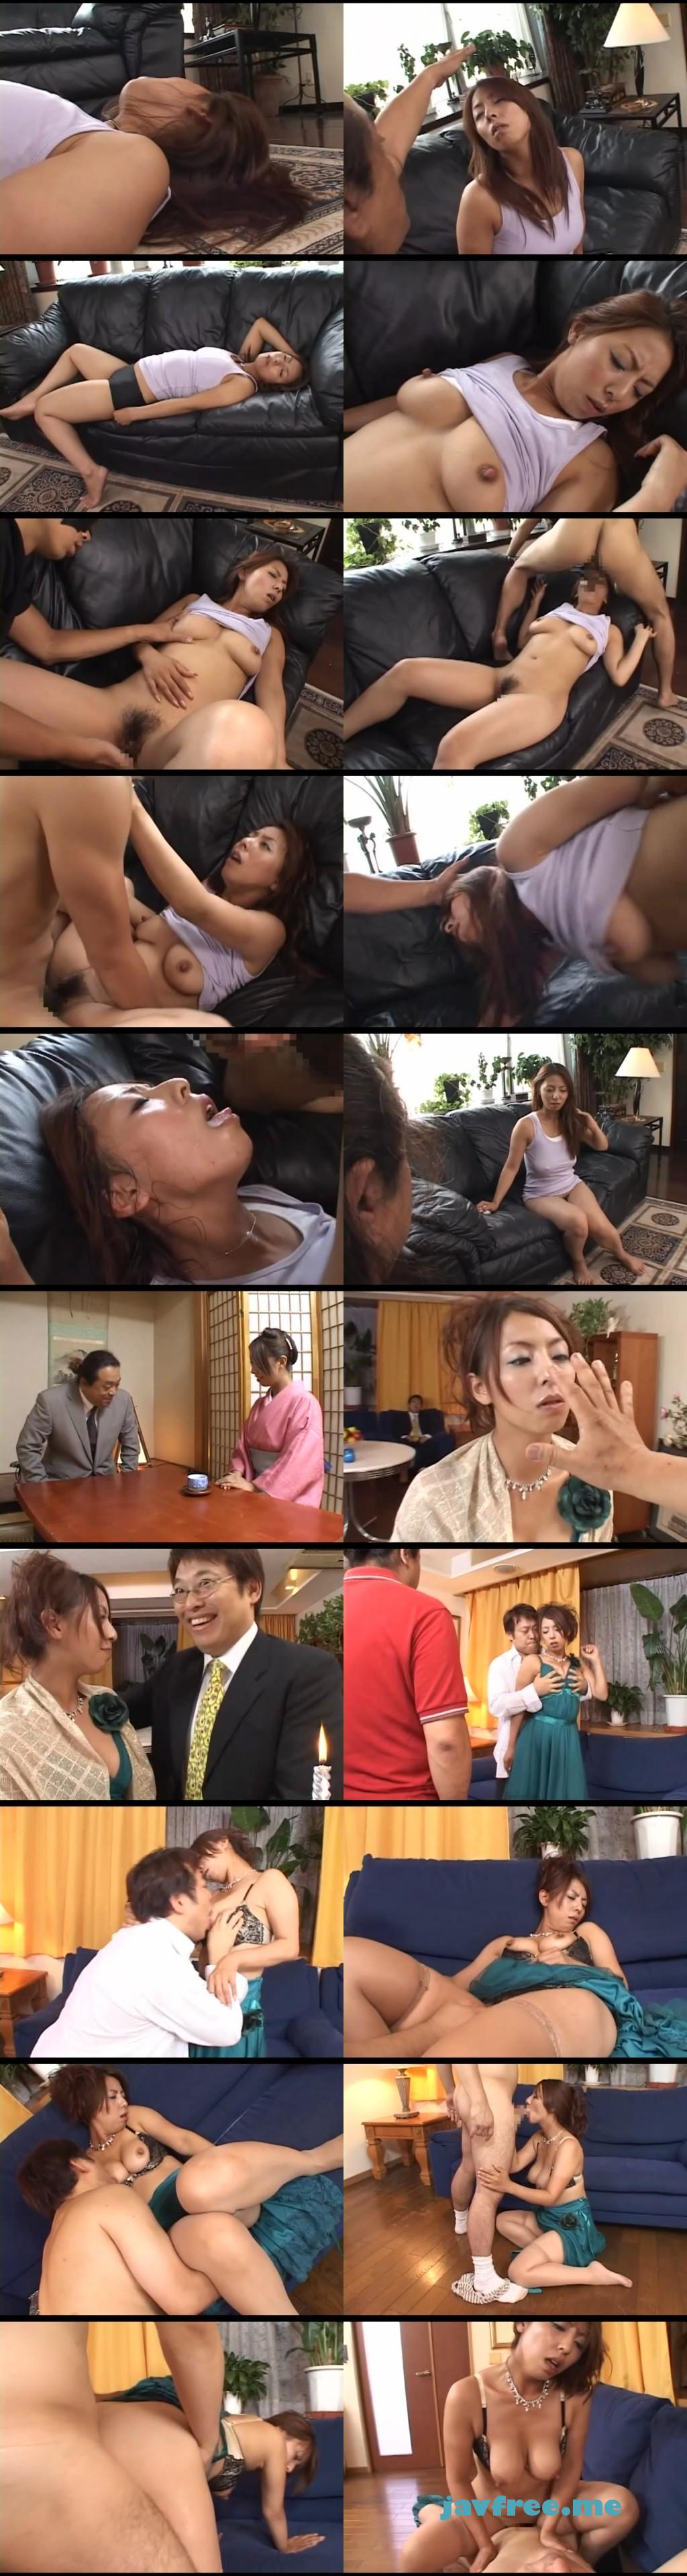 [PSSD-231] Best of 村上涼子 - image pssd231b on https://javfree.me